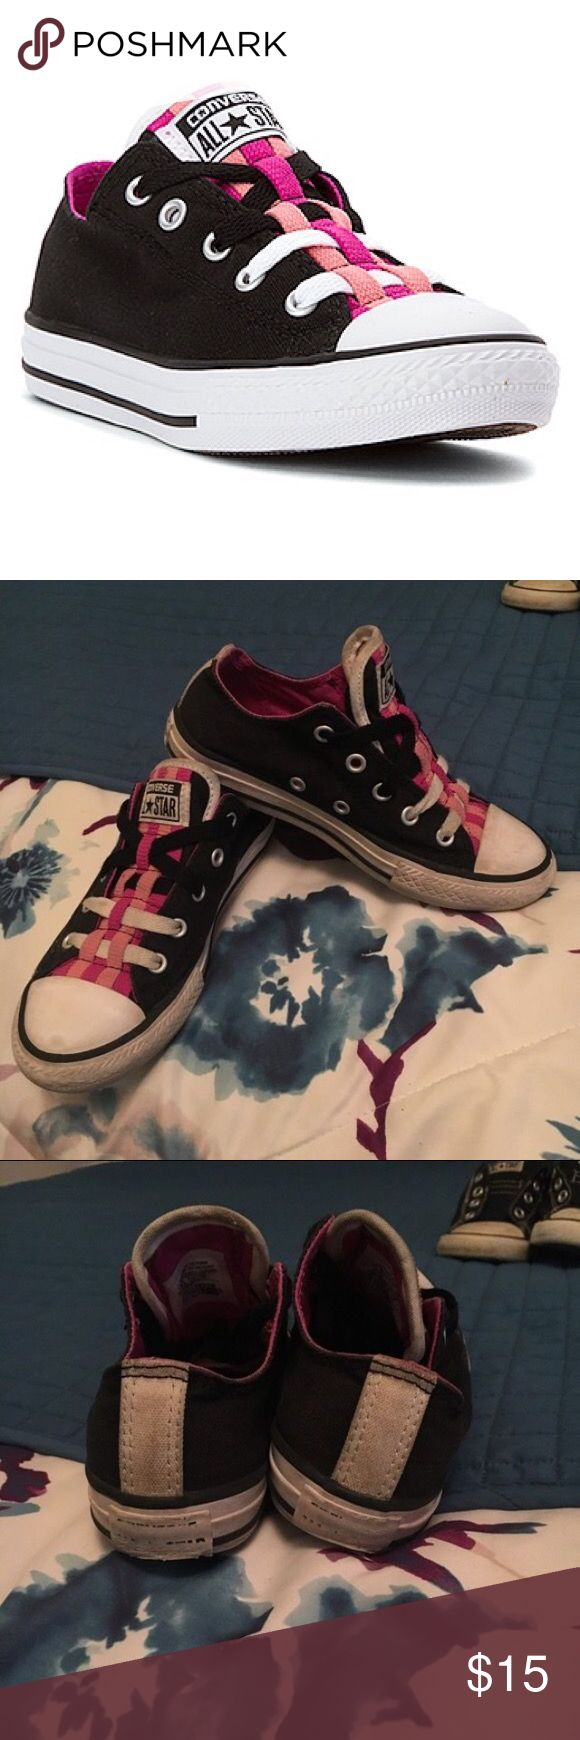 13 kids converse I day sale Really cute a little dirty but in good condition Converse Shoes Sneakers